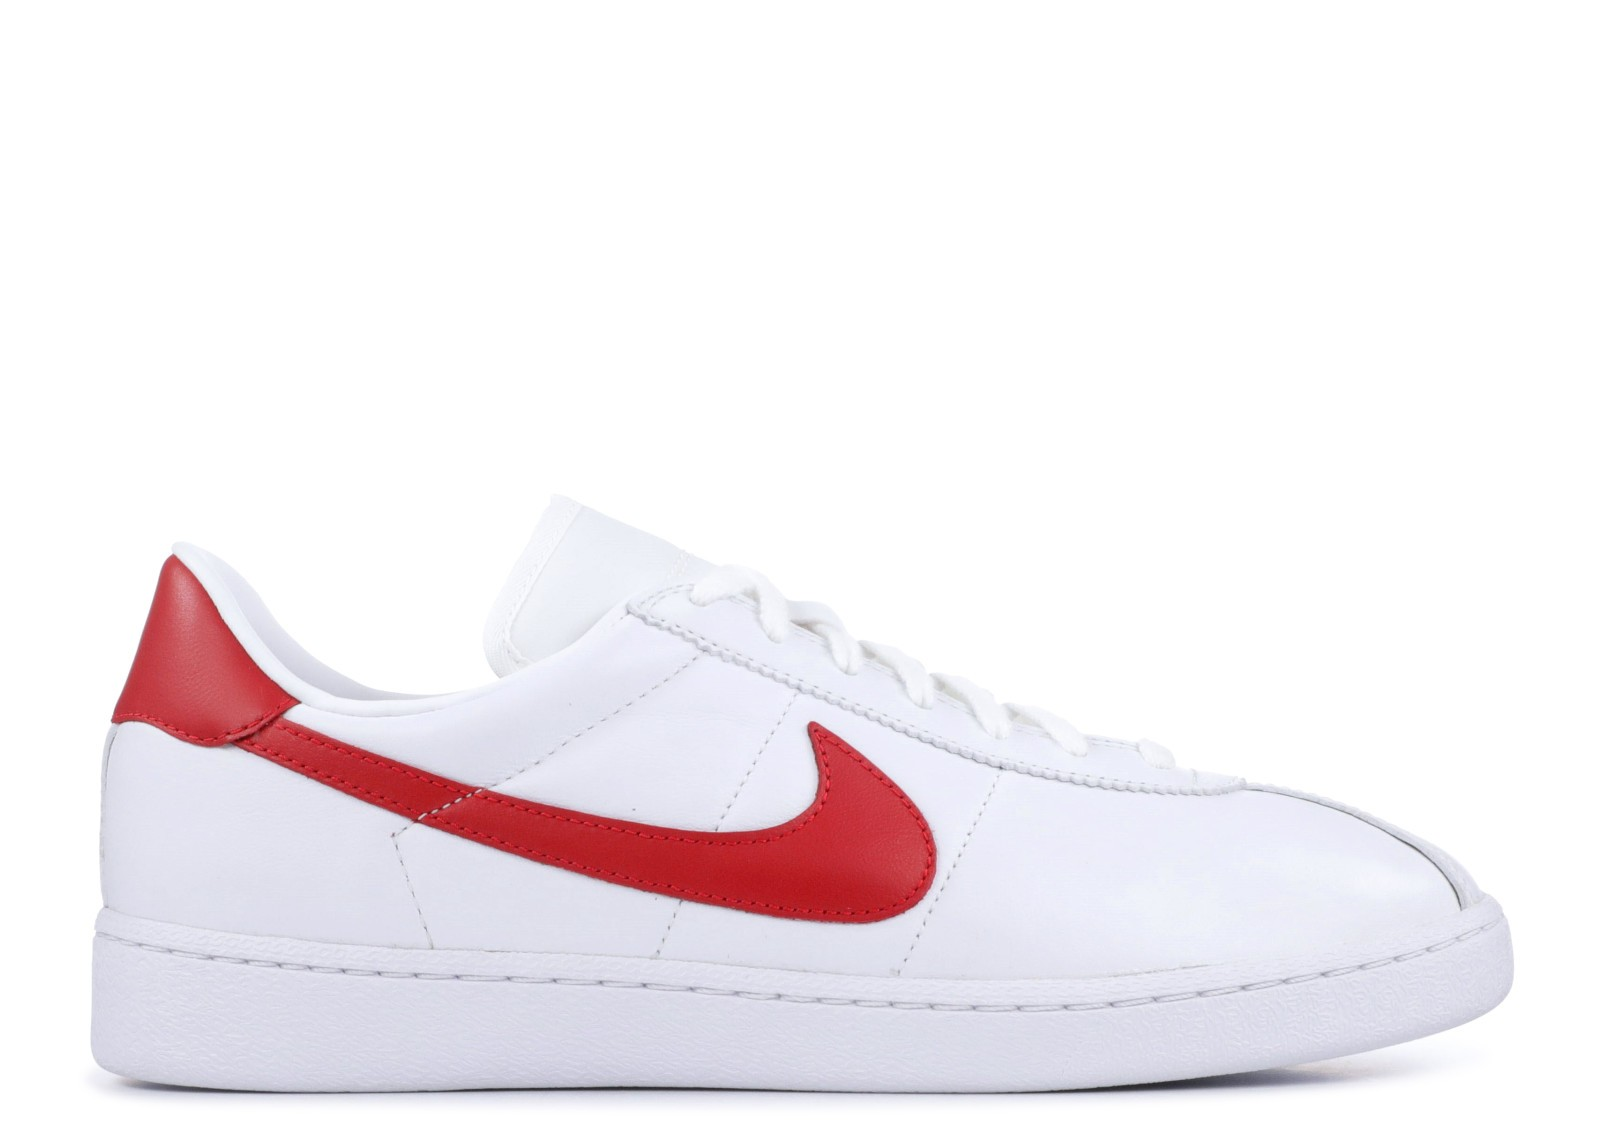 Nike Bruin Leather Blanche/Rouge 826670-160